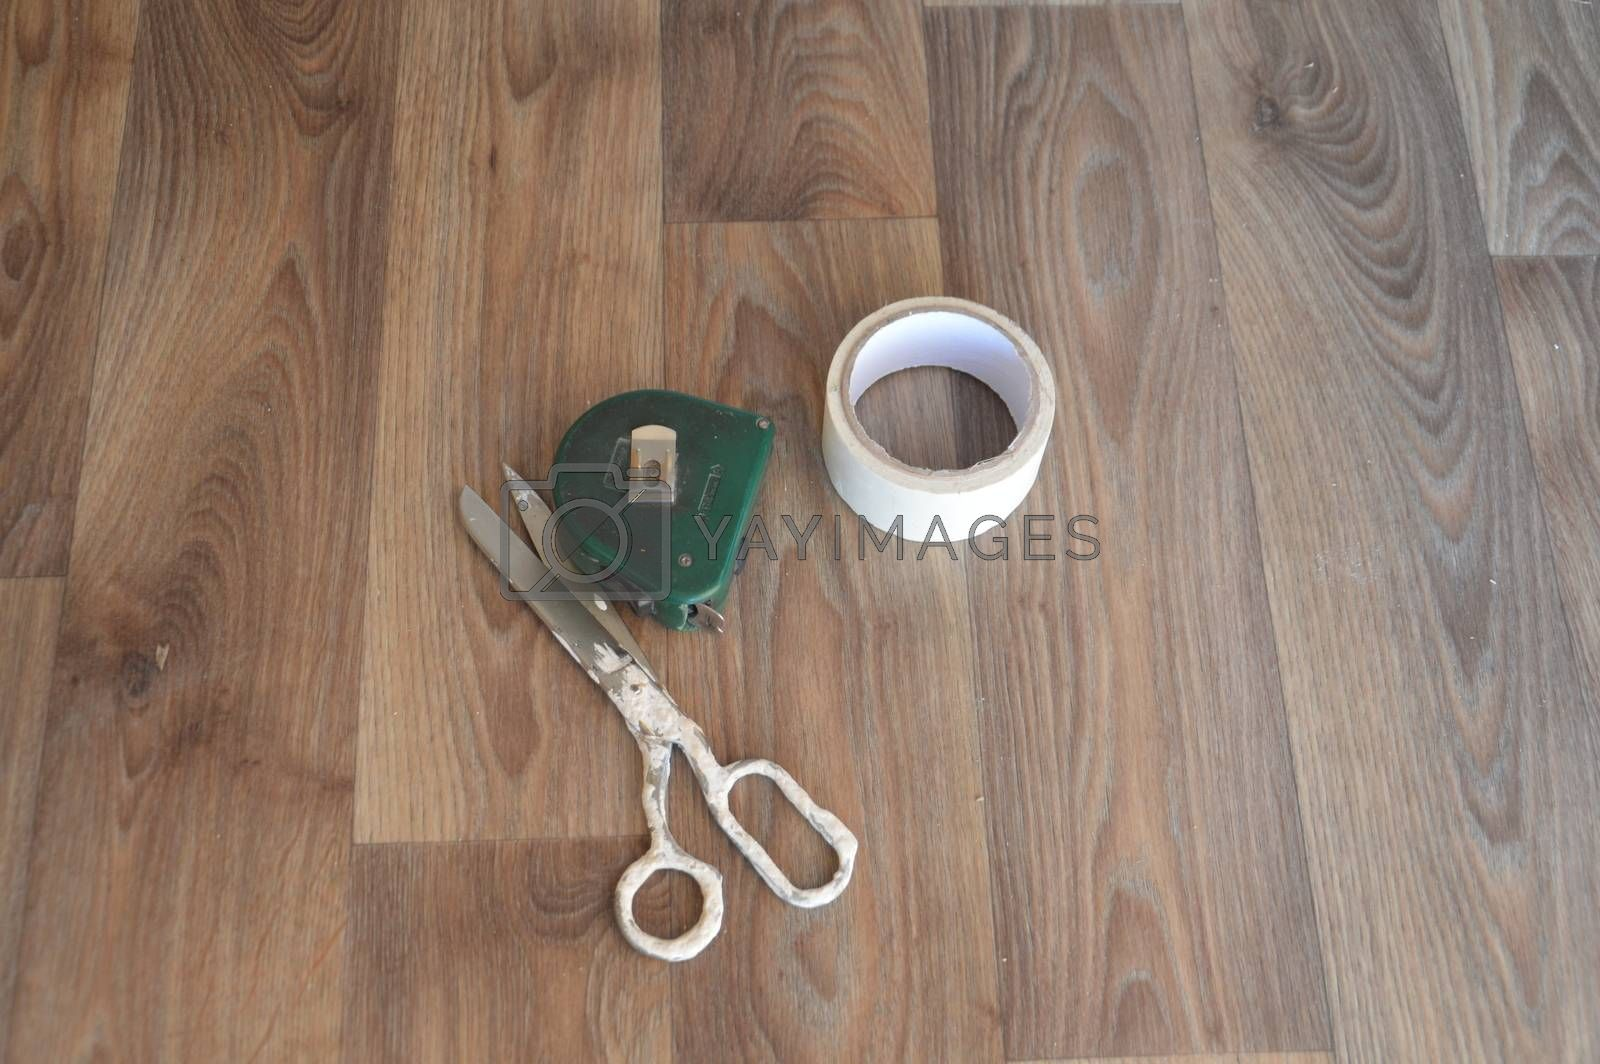 Laying industrial linoleum in the interior of  house